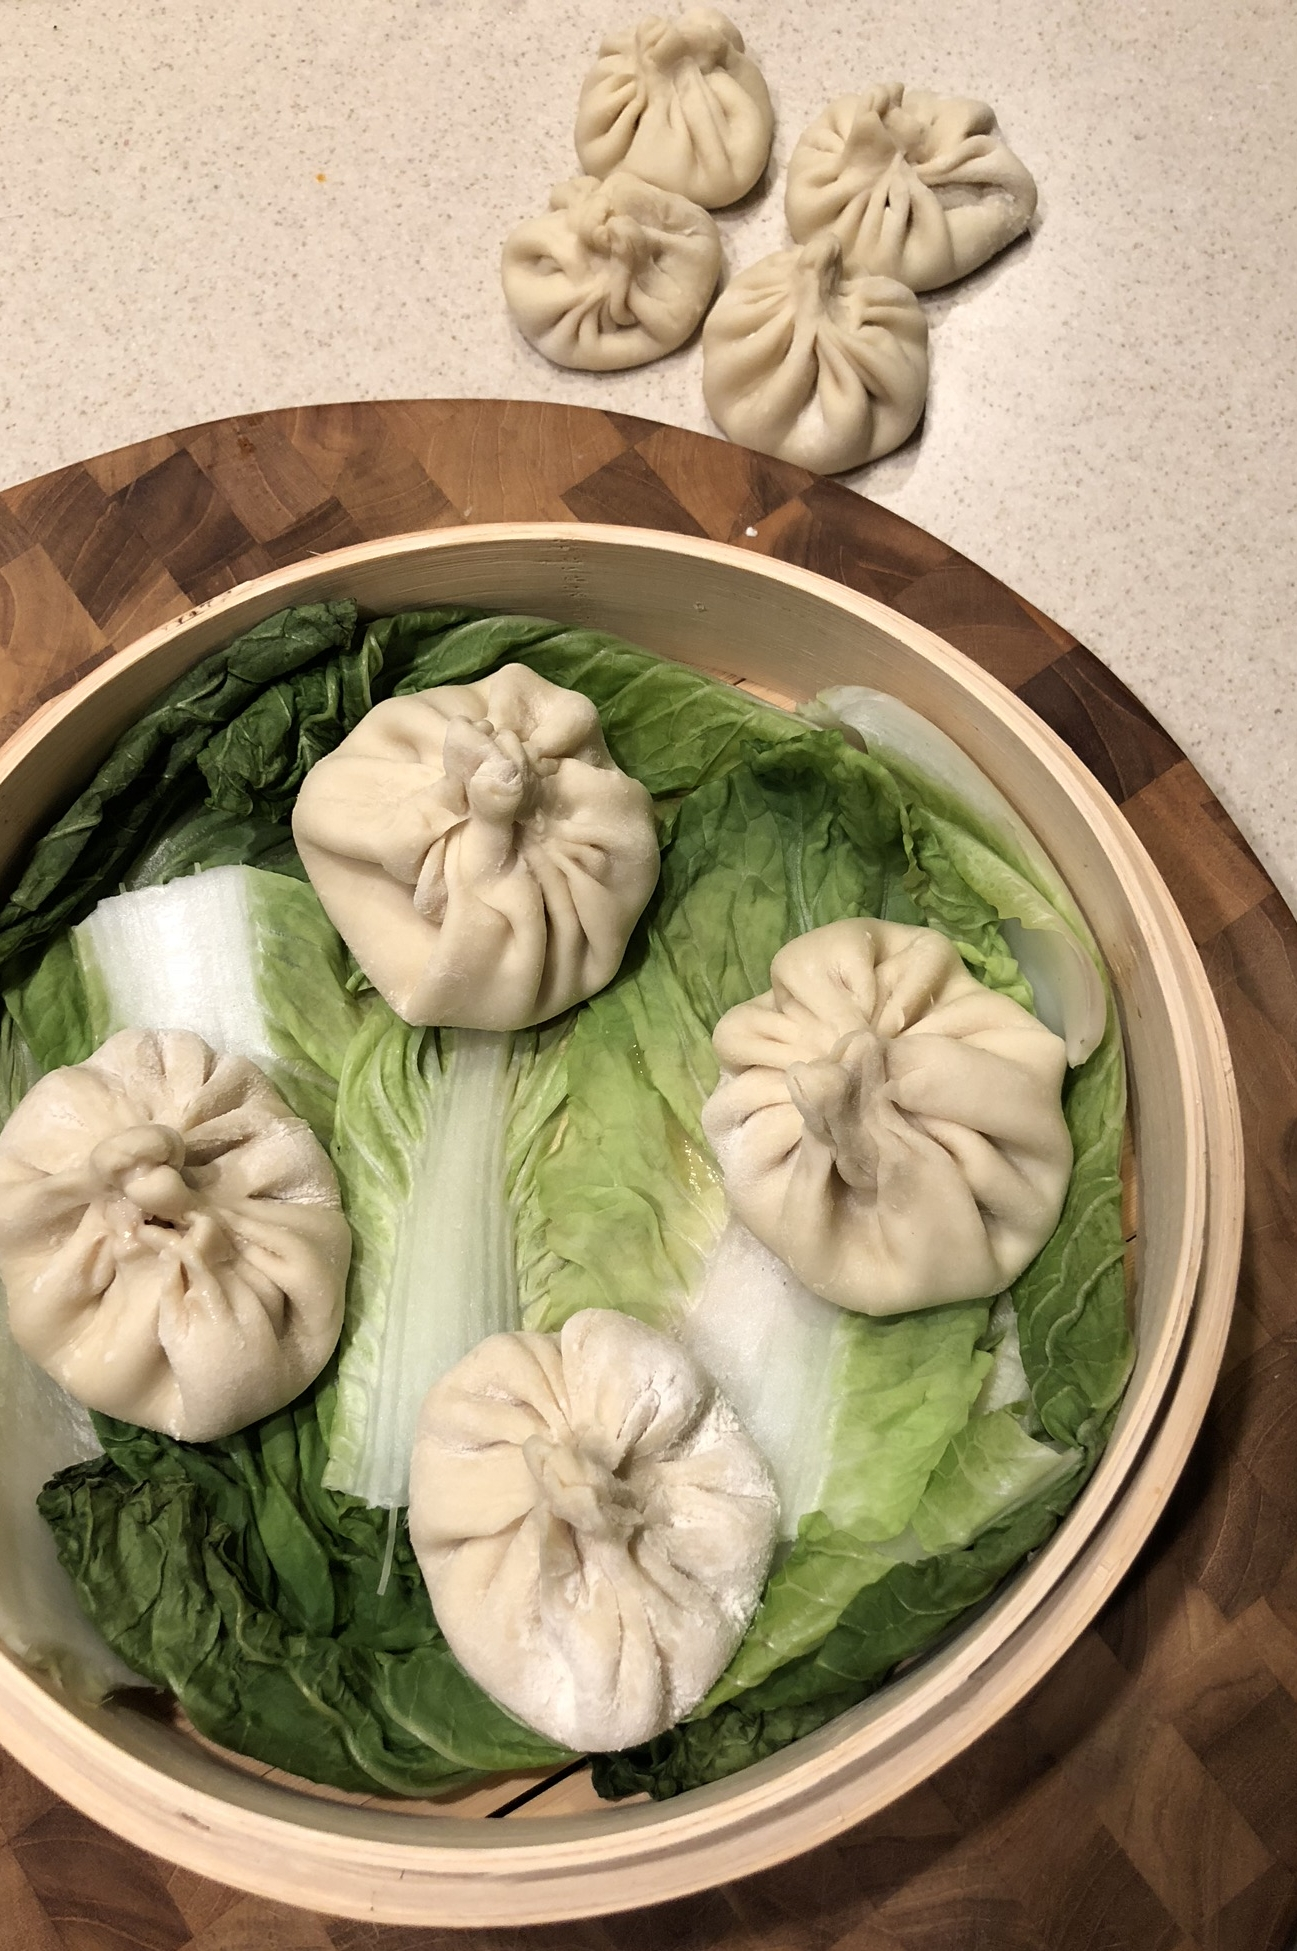 Placing the freshly made dumplings onto the cabbage leaves just before steaming.